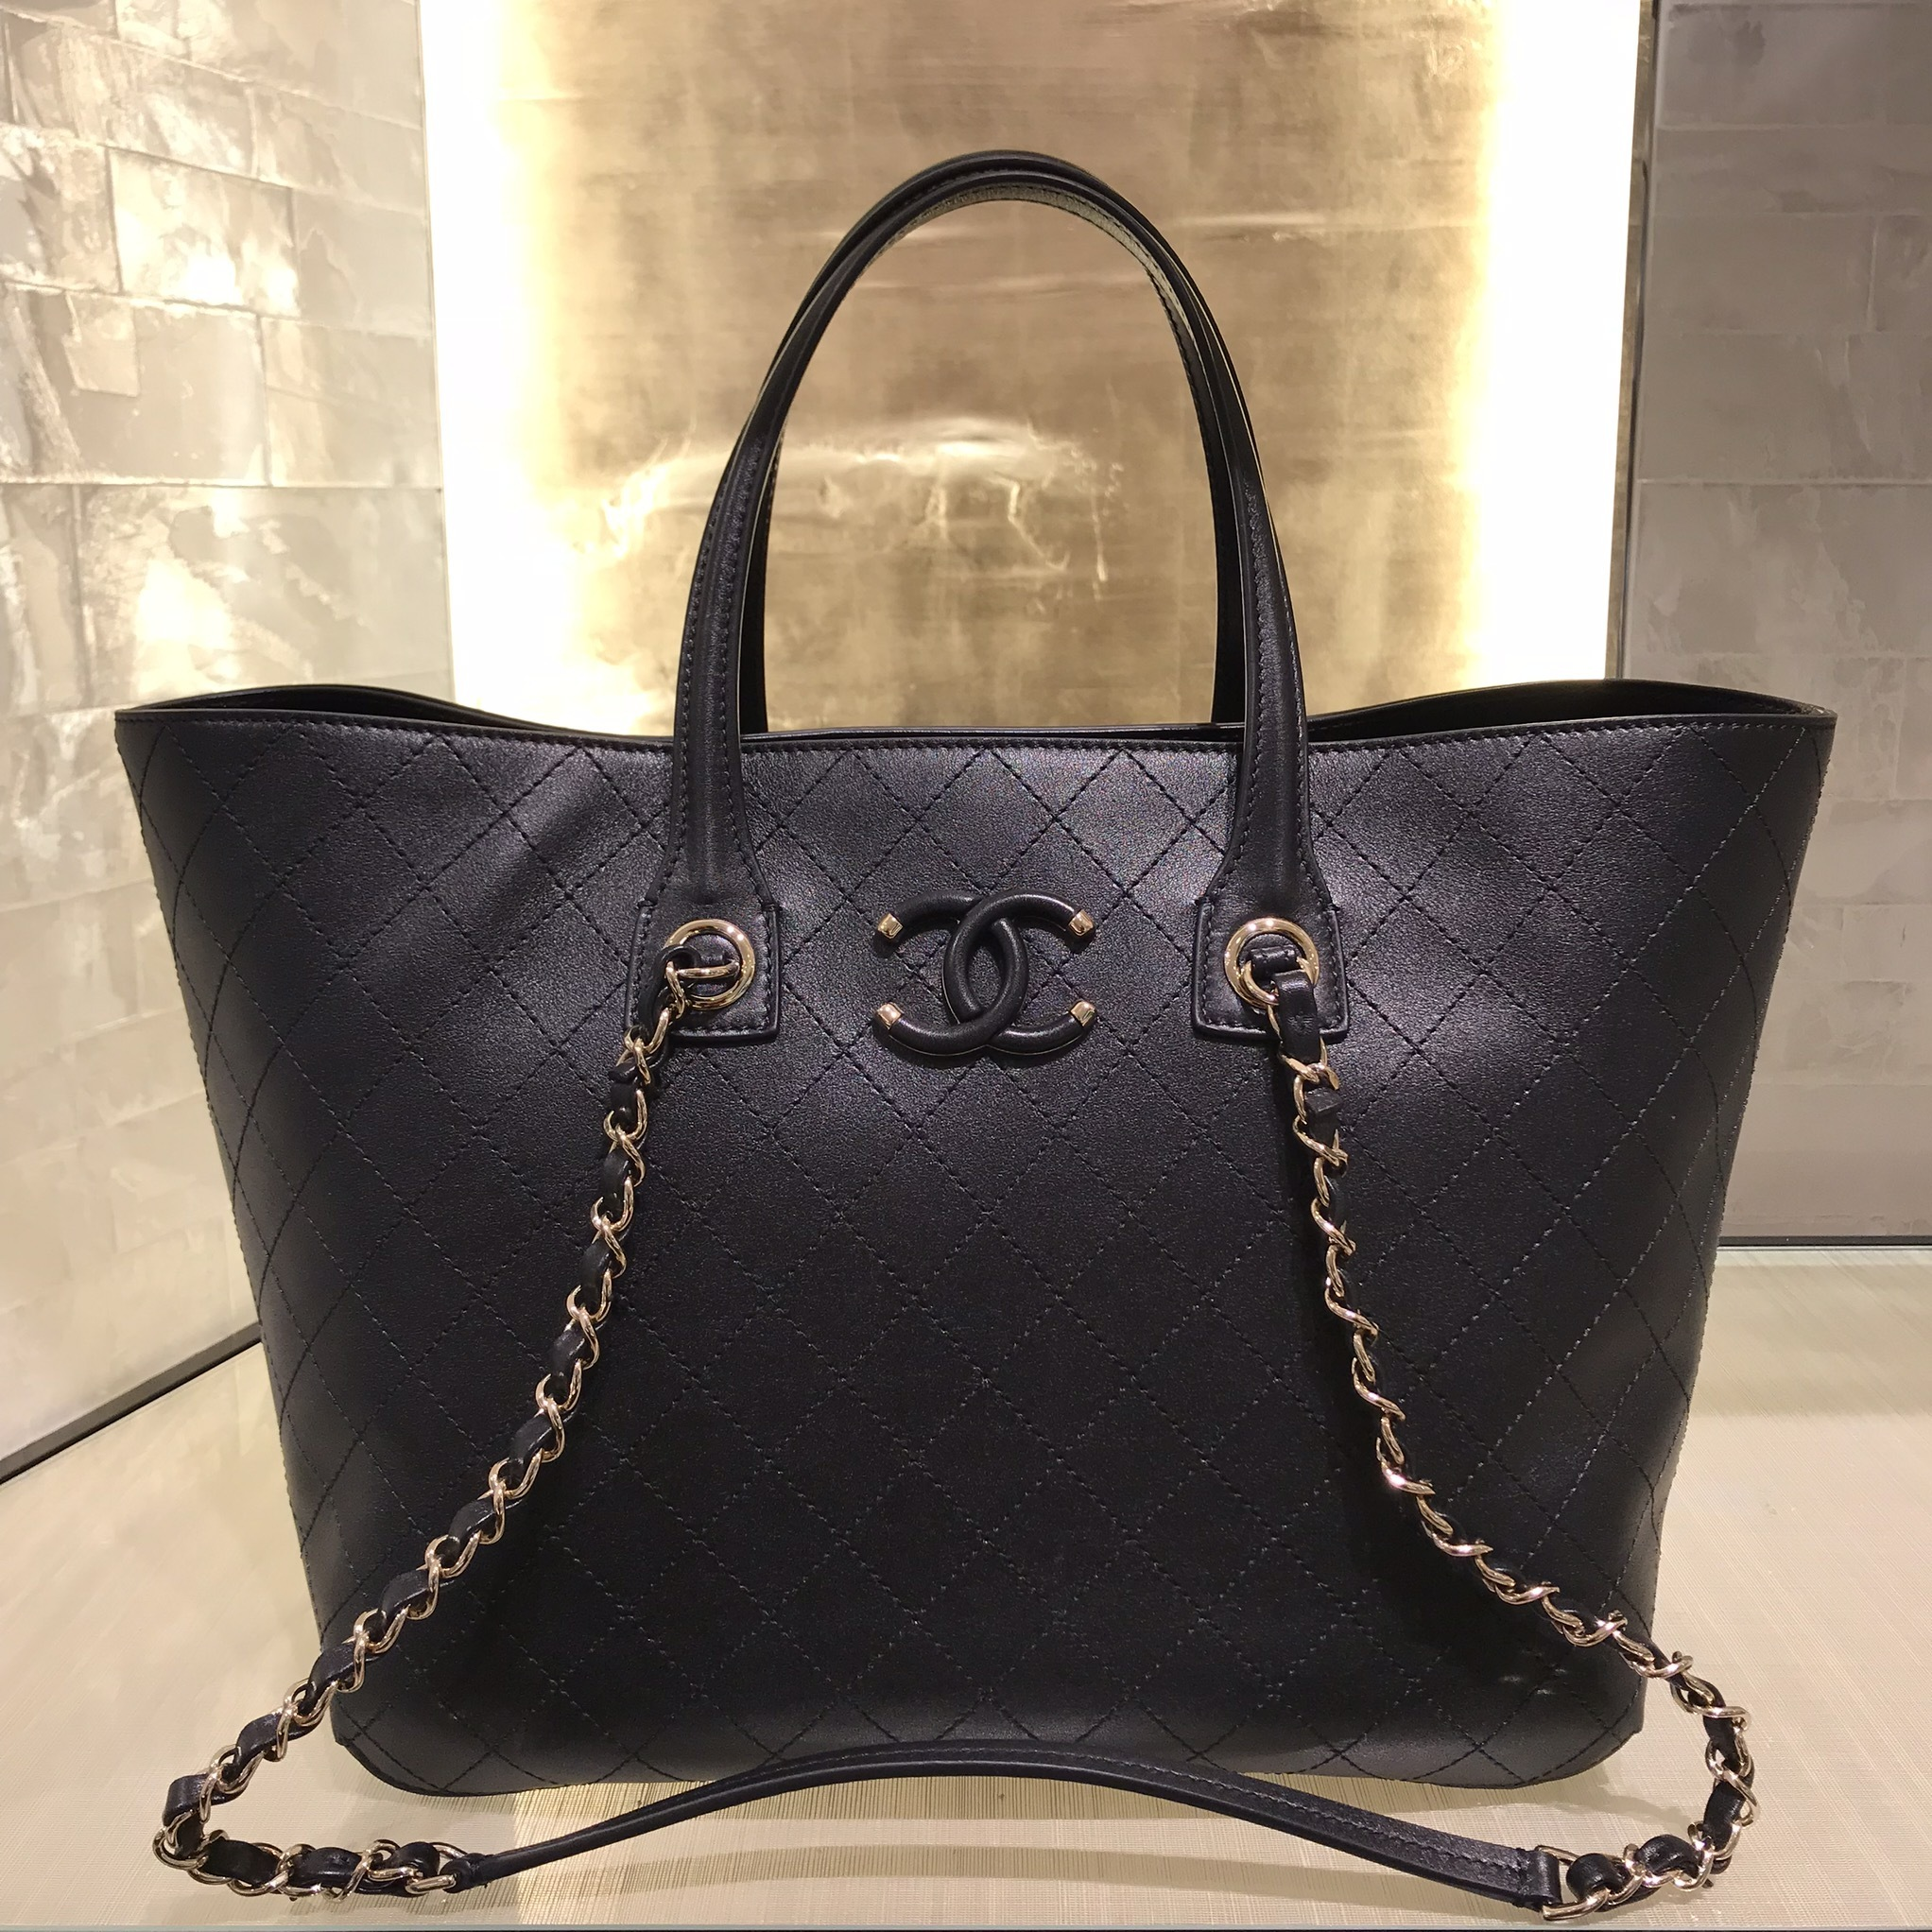 2019 SS ★CHANEL★CC CASE large double handle NS tote (CHANEL/トートバッグ) 43413033